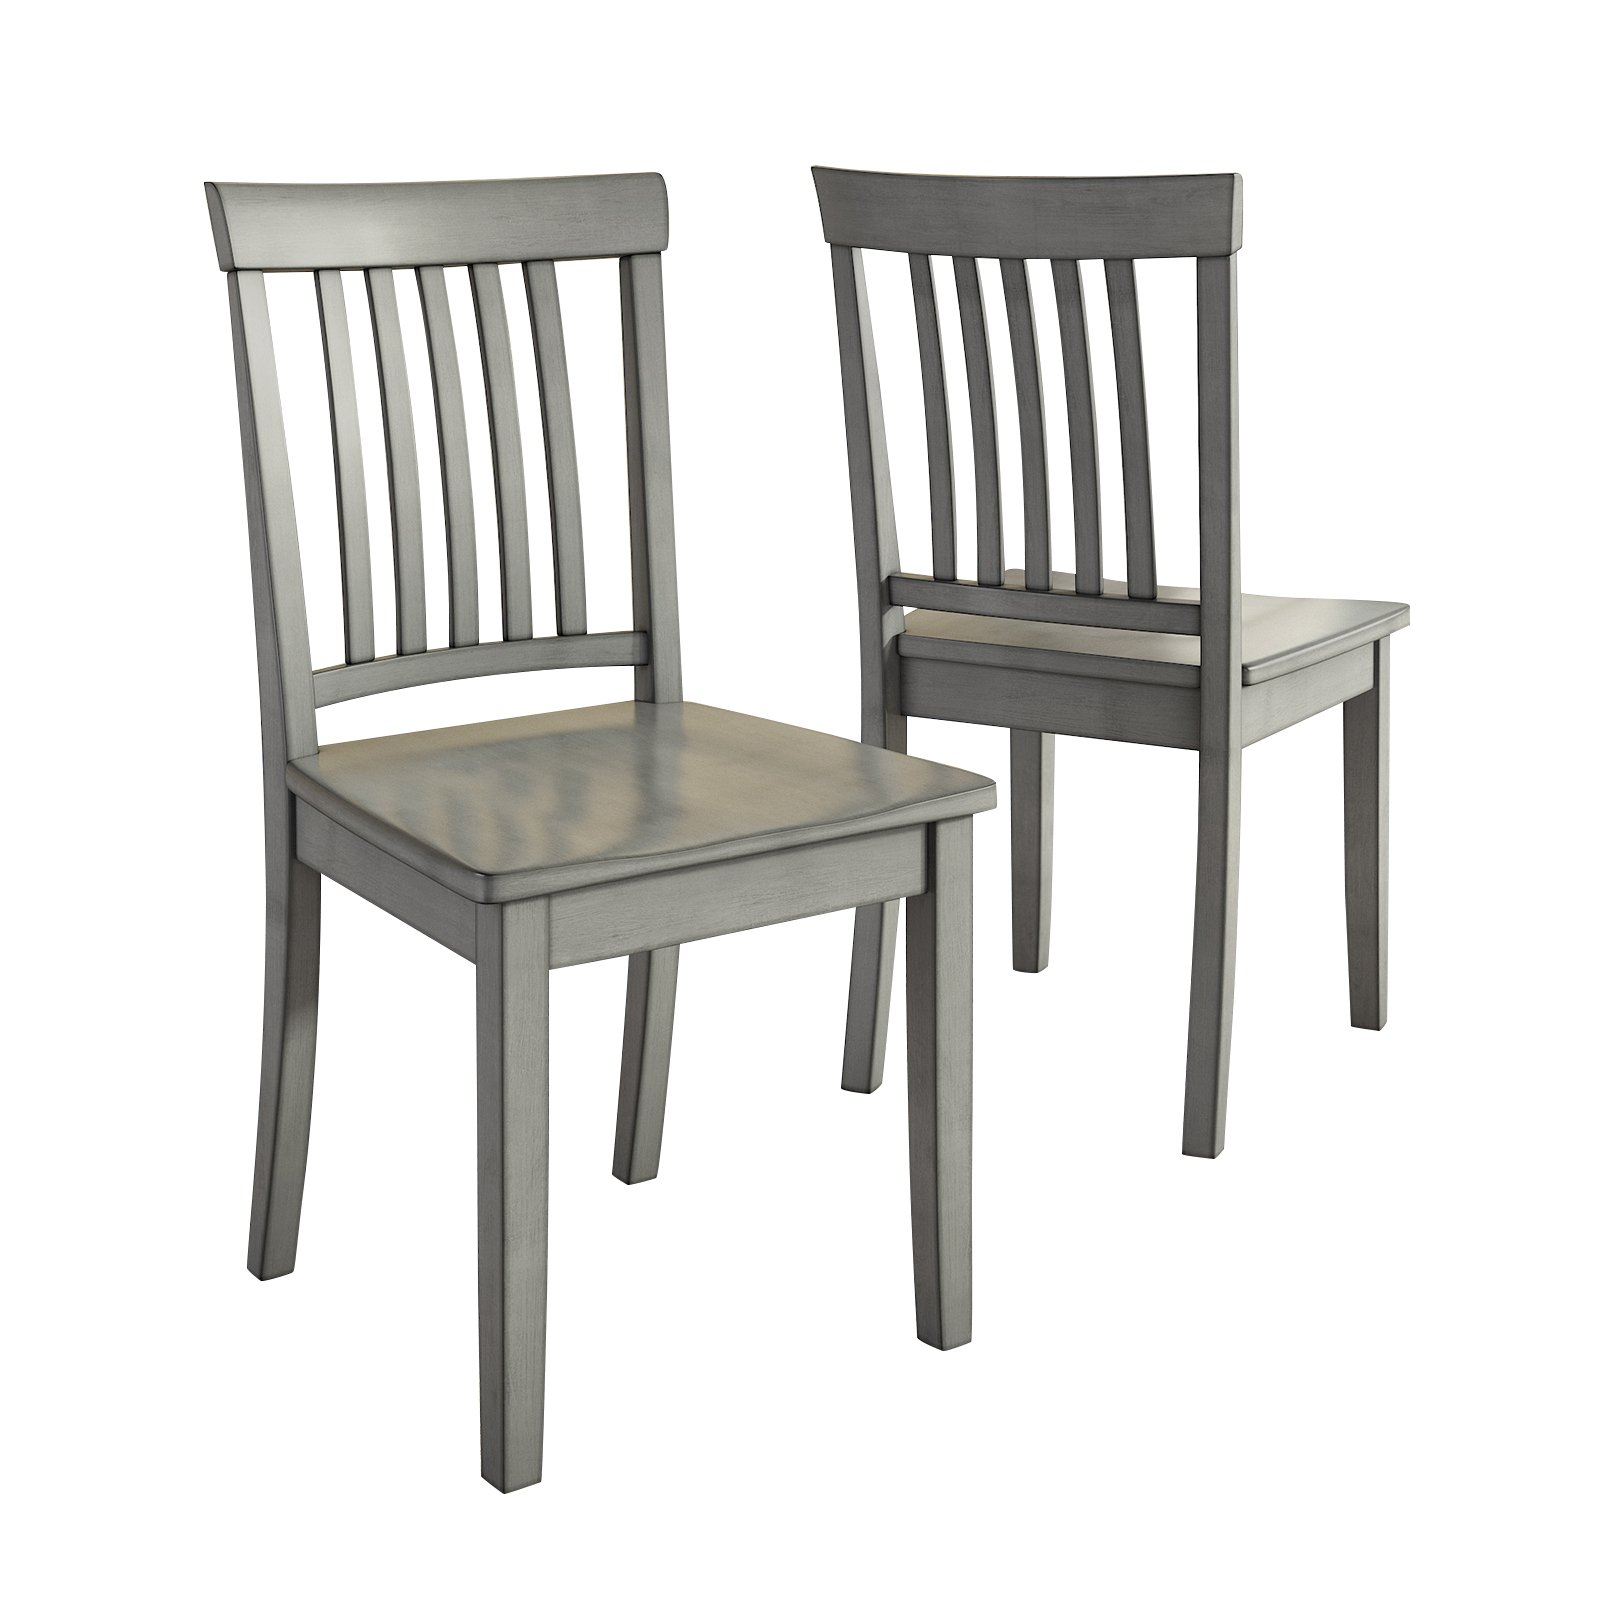 Merveilleux Lexington Mission Back Dining Chair, Set Of 2, Multiple Colors